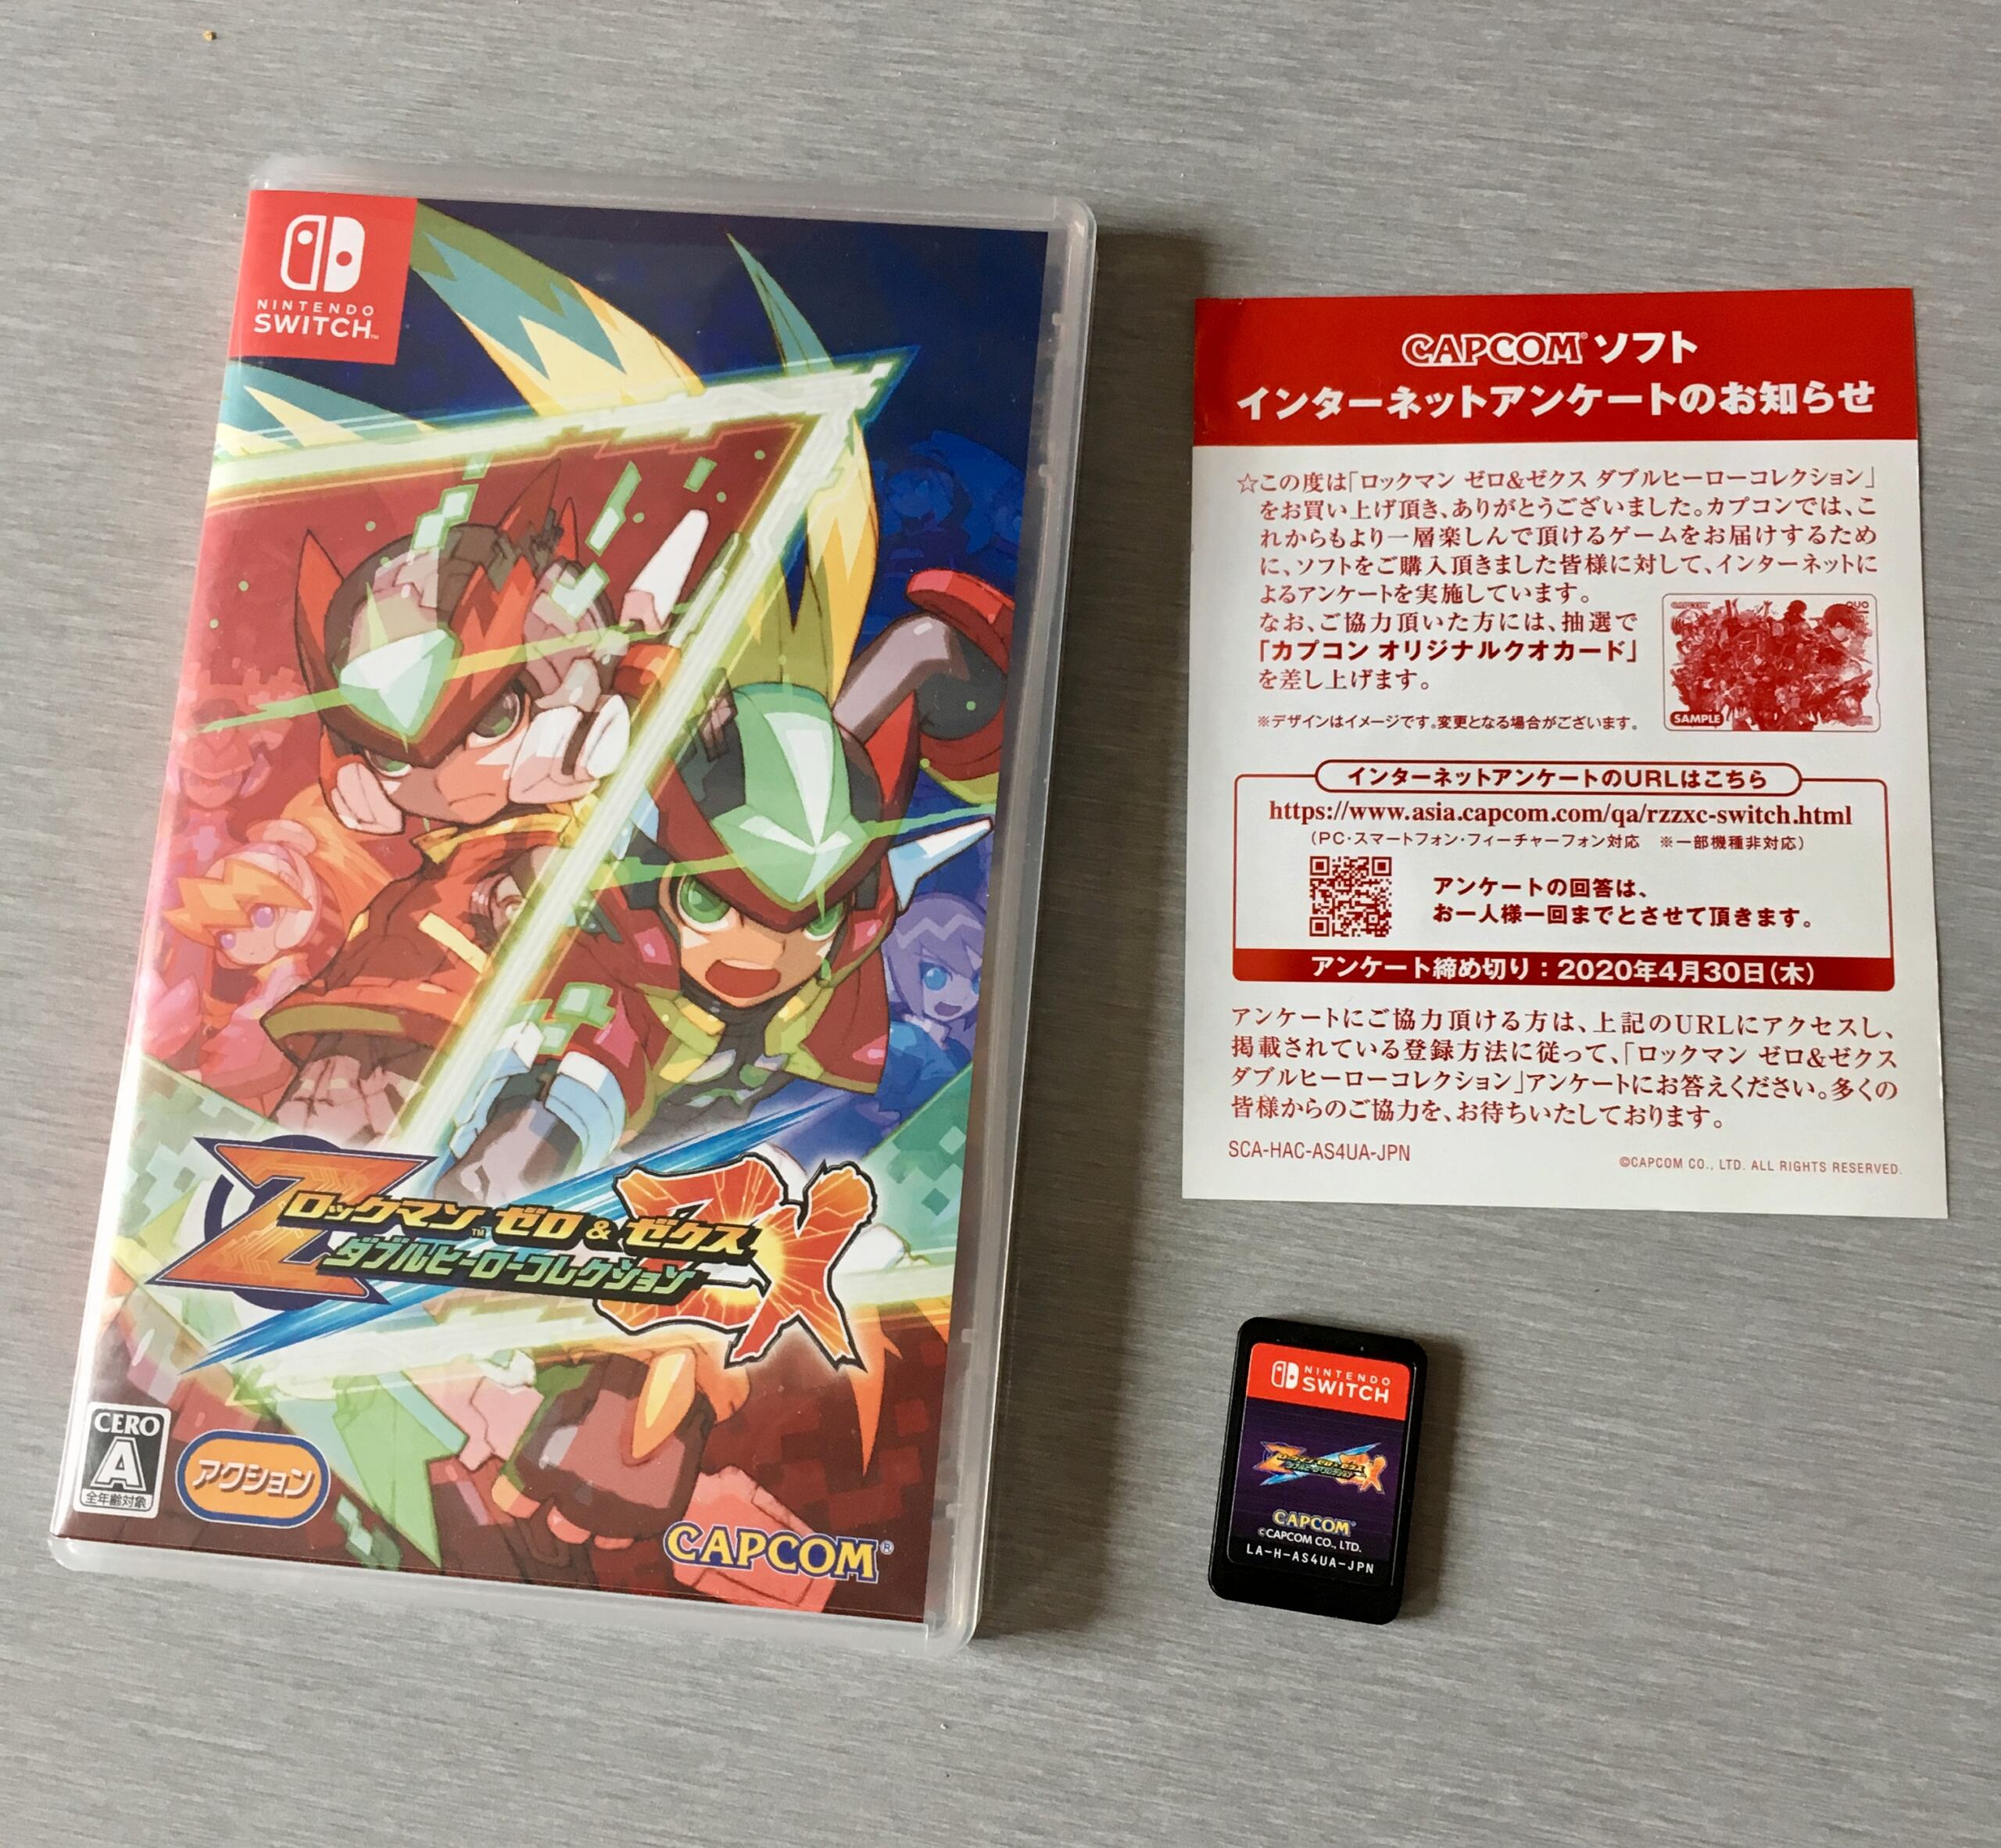 [VDS/ECH] Megaman Zero / ZX collection, God Eater 3 neuf Img_3313